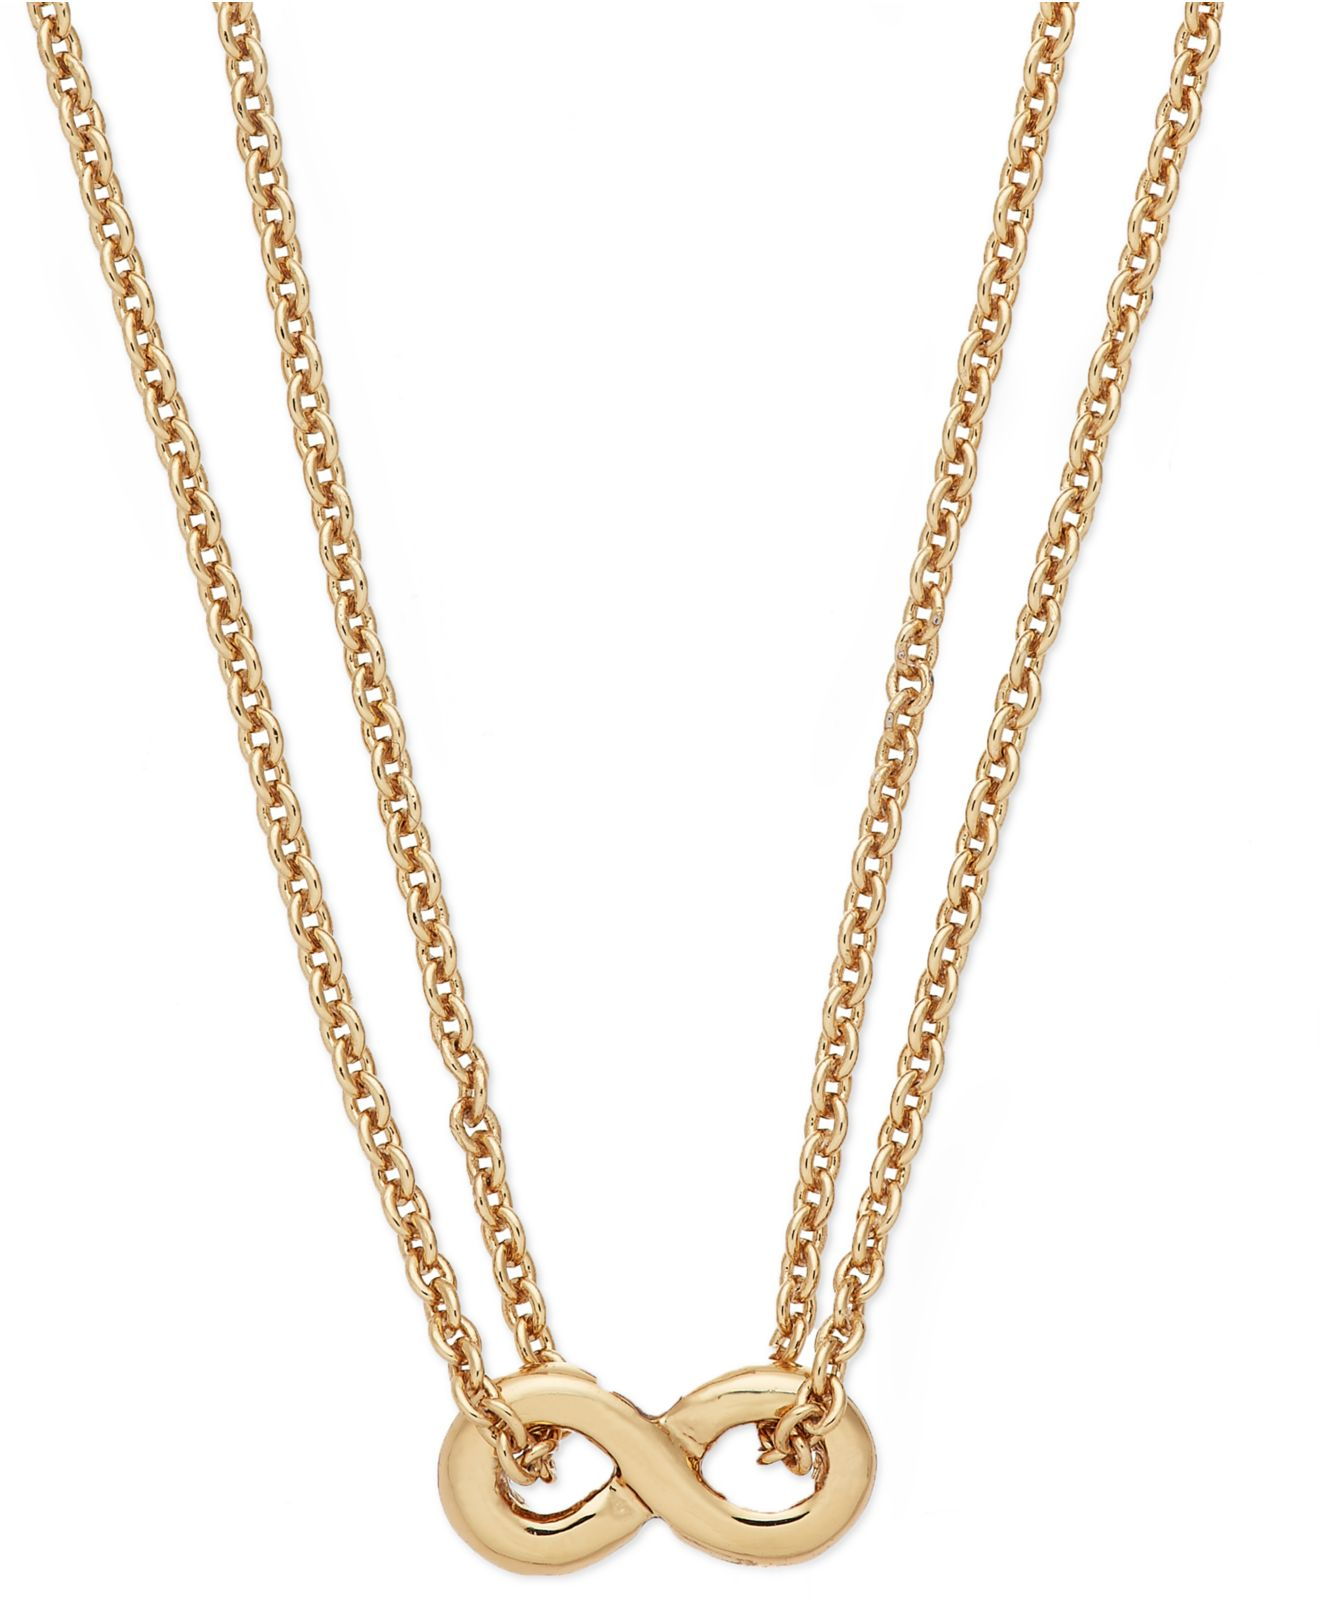 Kate spade new york New York Gold tone Mini Infinity Pendant